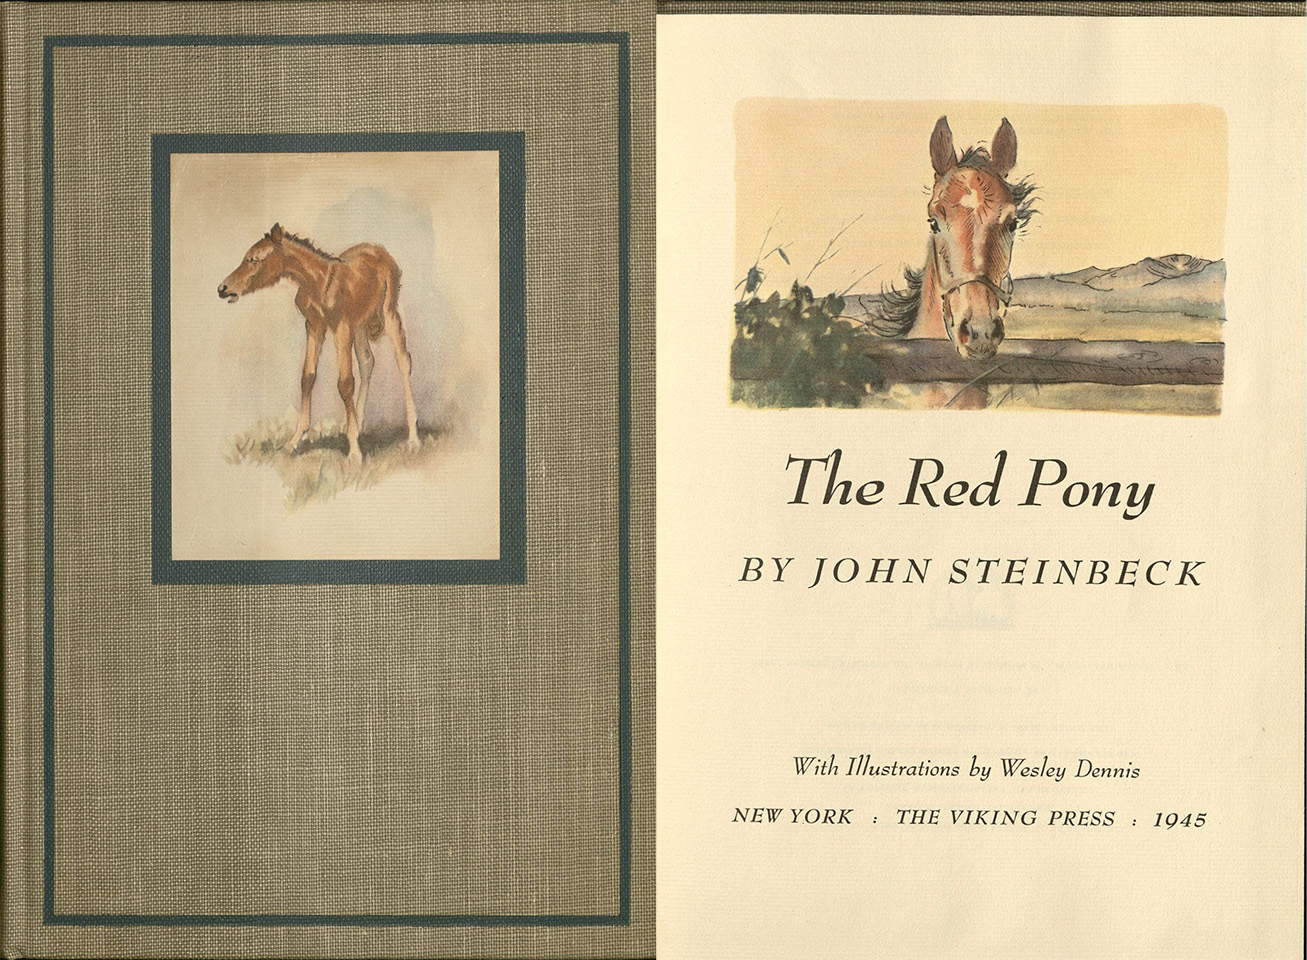 the themes of morality and disillusionment in the novel the red pony by john steinbeck Summary: analyzes themes and reveals symbolism found in chapter four (the leader of the people)of john steinbeck's short novel, the red pony the haystacks, the cattle, the pitchfork, the.